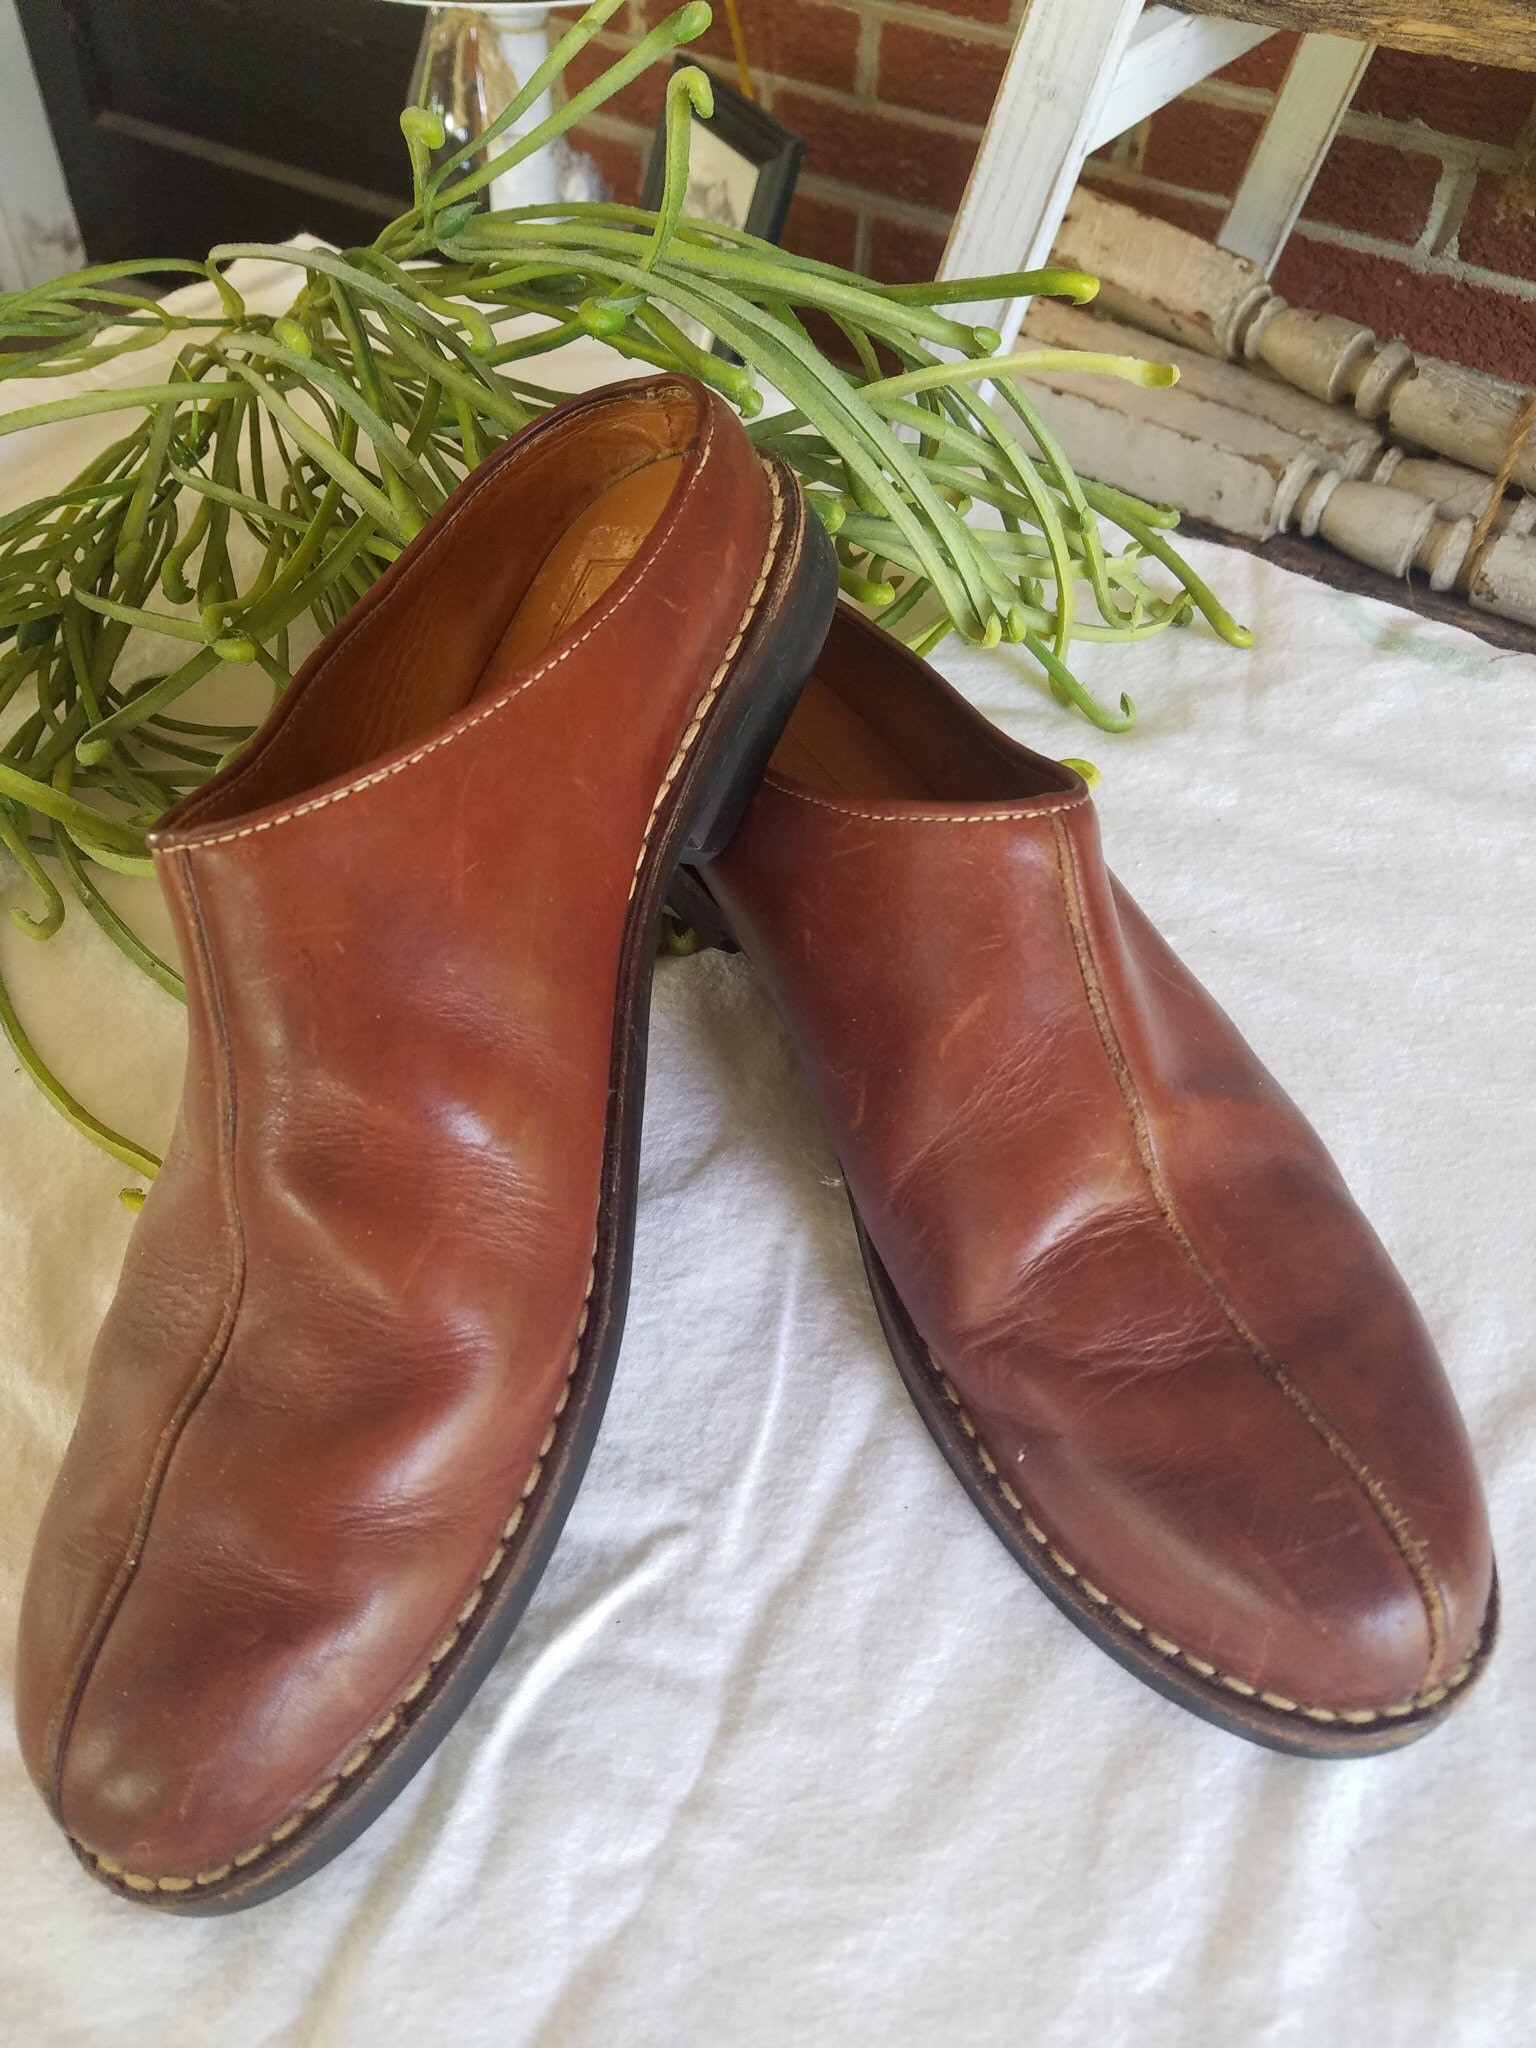 Mens Cole Haan Shoes mens vintage cole haan shoes Mens Mules Cole Haan Mules Cole Haan Slide On Shoes Cole Haan Slippers